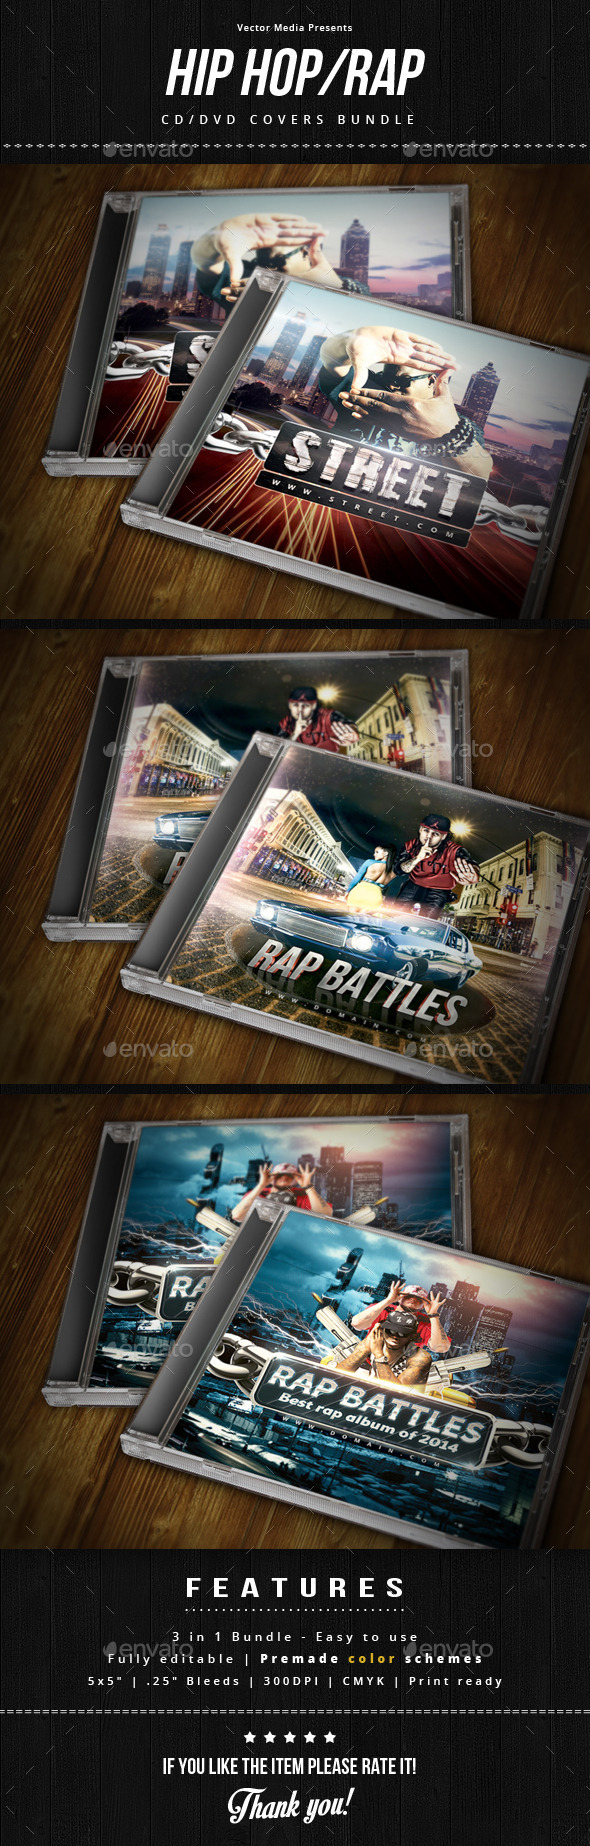 Hip Hop / Rap - Cd Covers Bundle - CD & DVD Artwork Print Templates